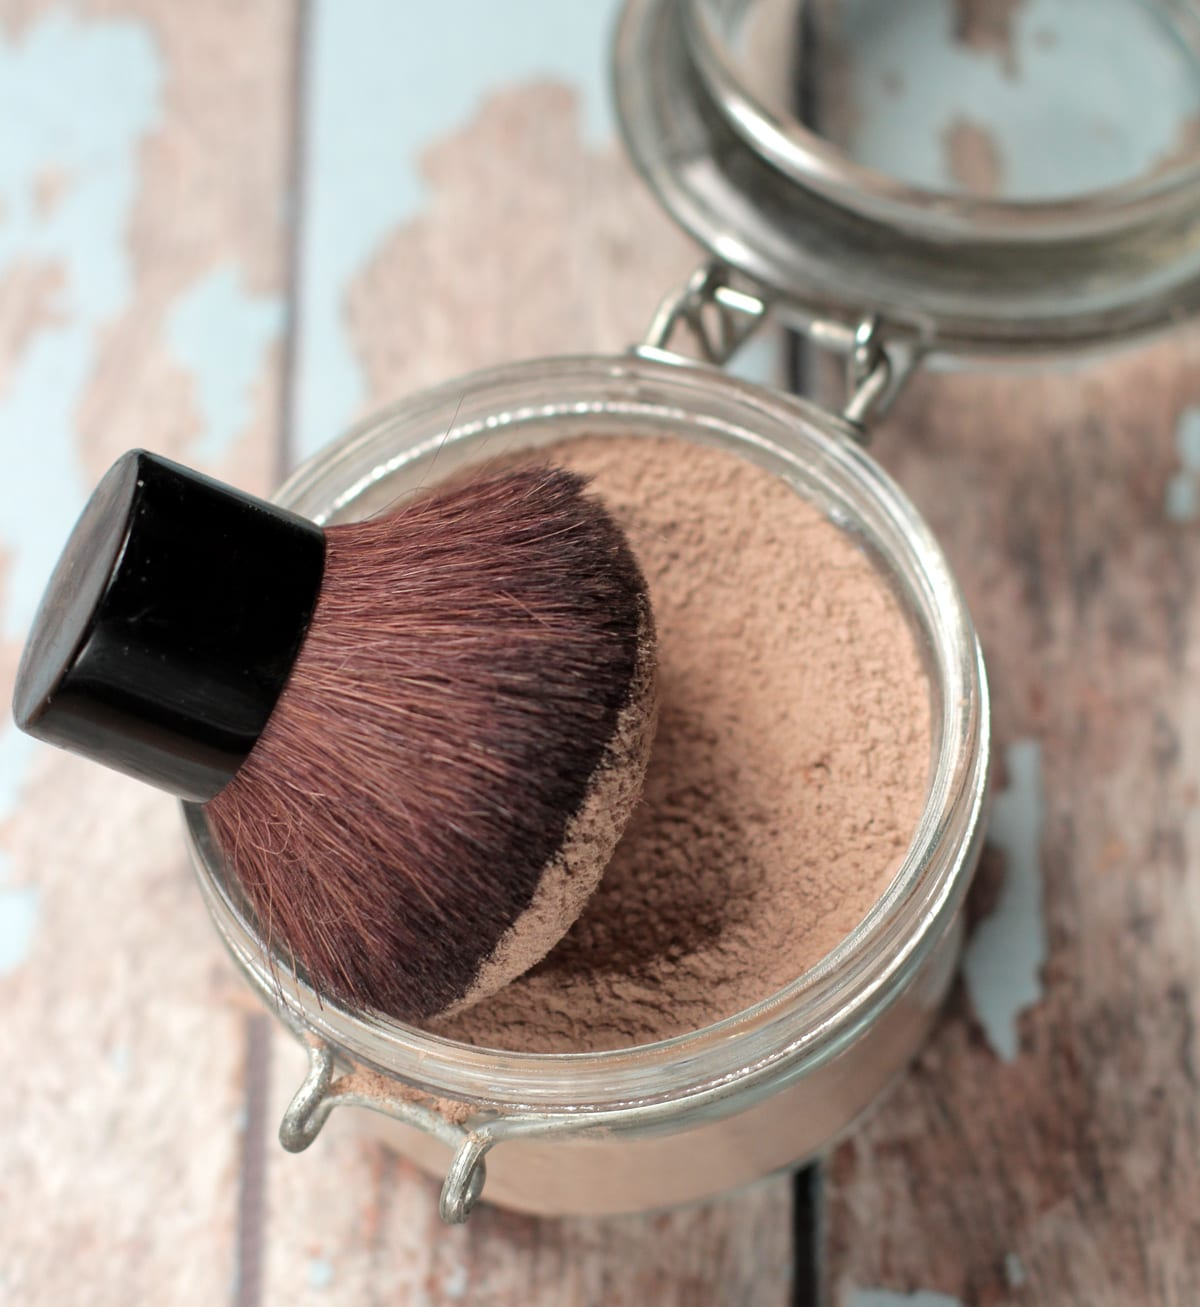 """Search """"DIY homemade Foundation powder"""" by Live Simply and watch it there. This powder doesn't do much which is why I think it isn't demonstrated by many. I make true mineral powder foundation makeup and that does cover!"""